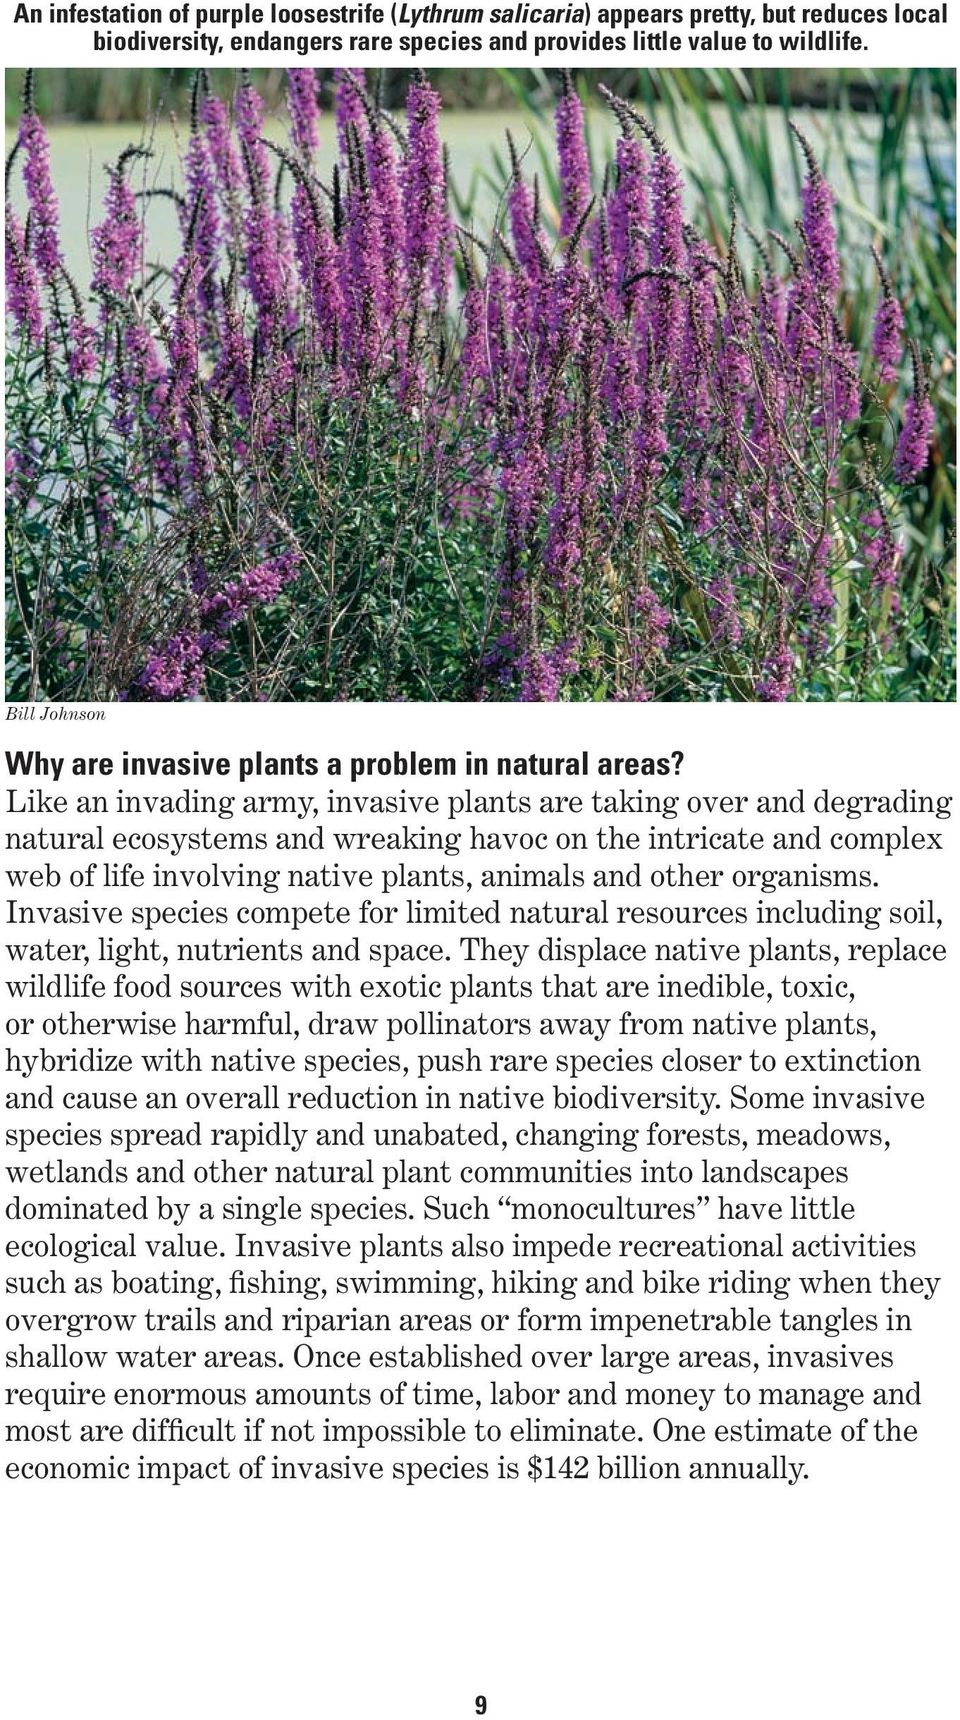 Like an invading army, invasive plants are taking over and degrading natural ecosystems and wreaking havoc on the intricate and complex web of life involving native plants, animals and other